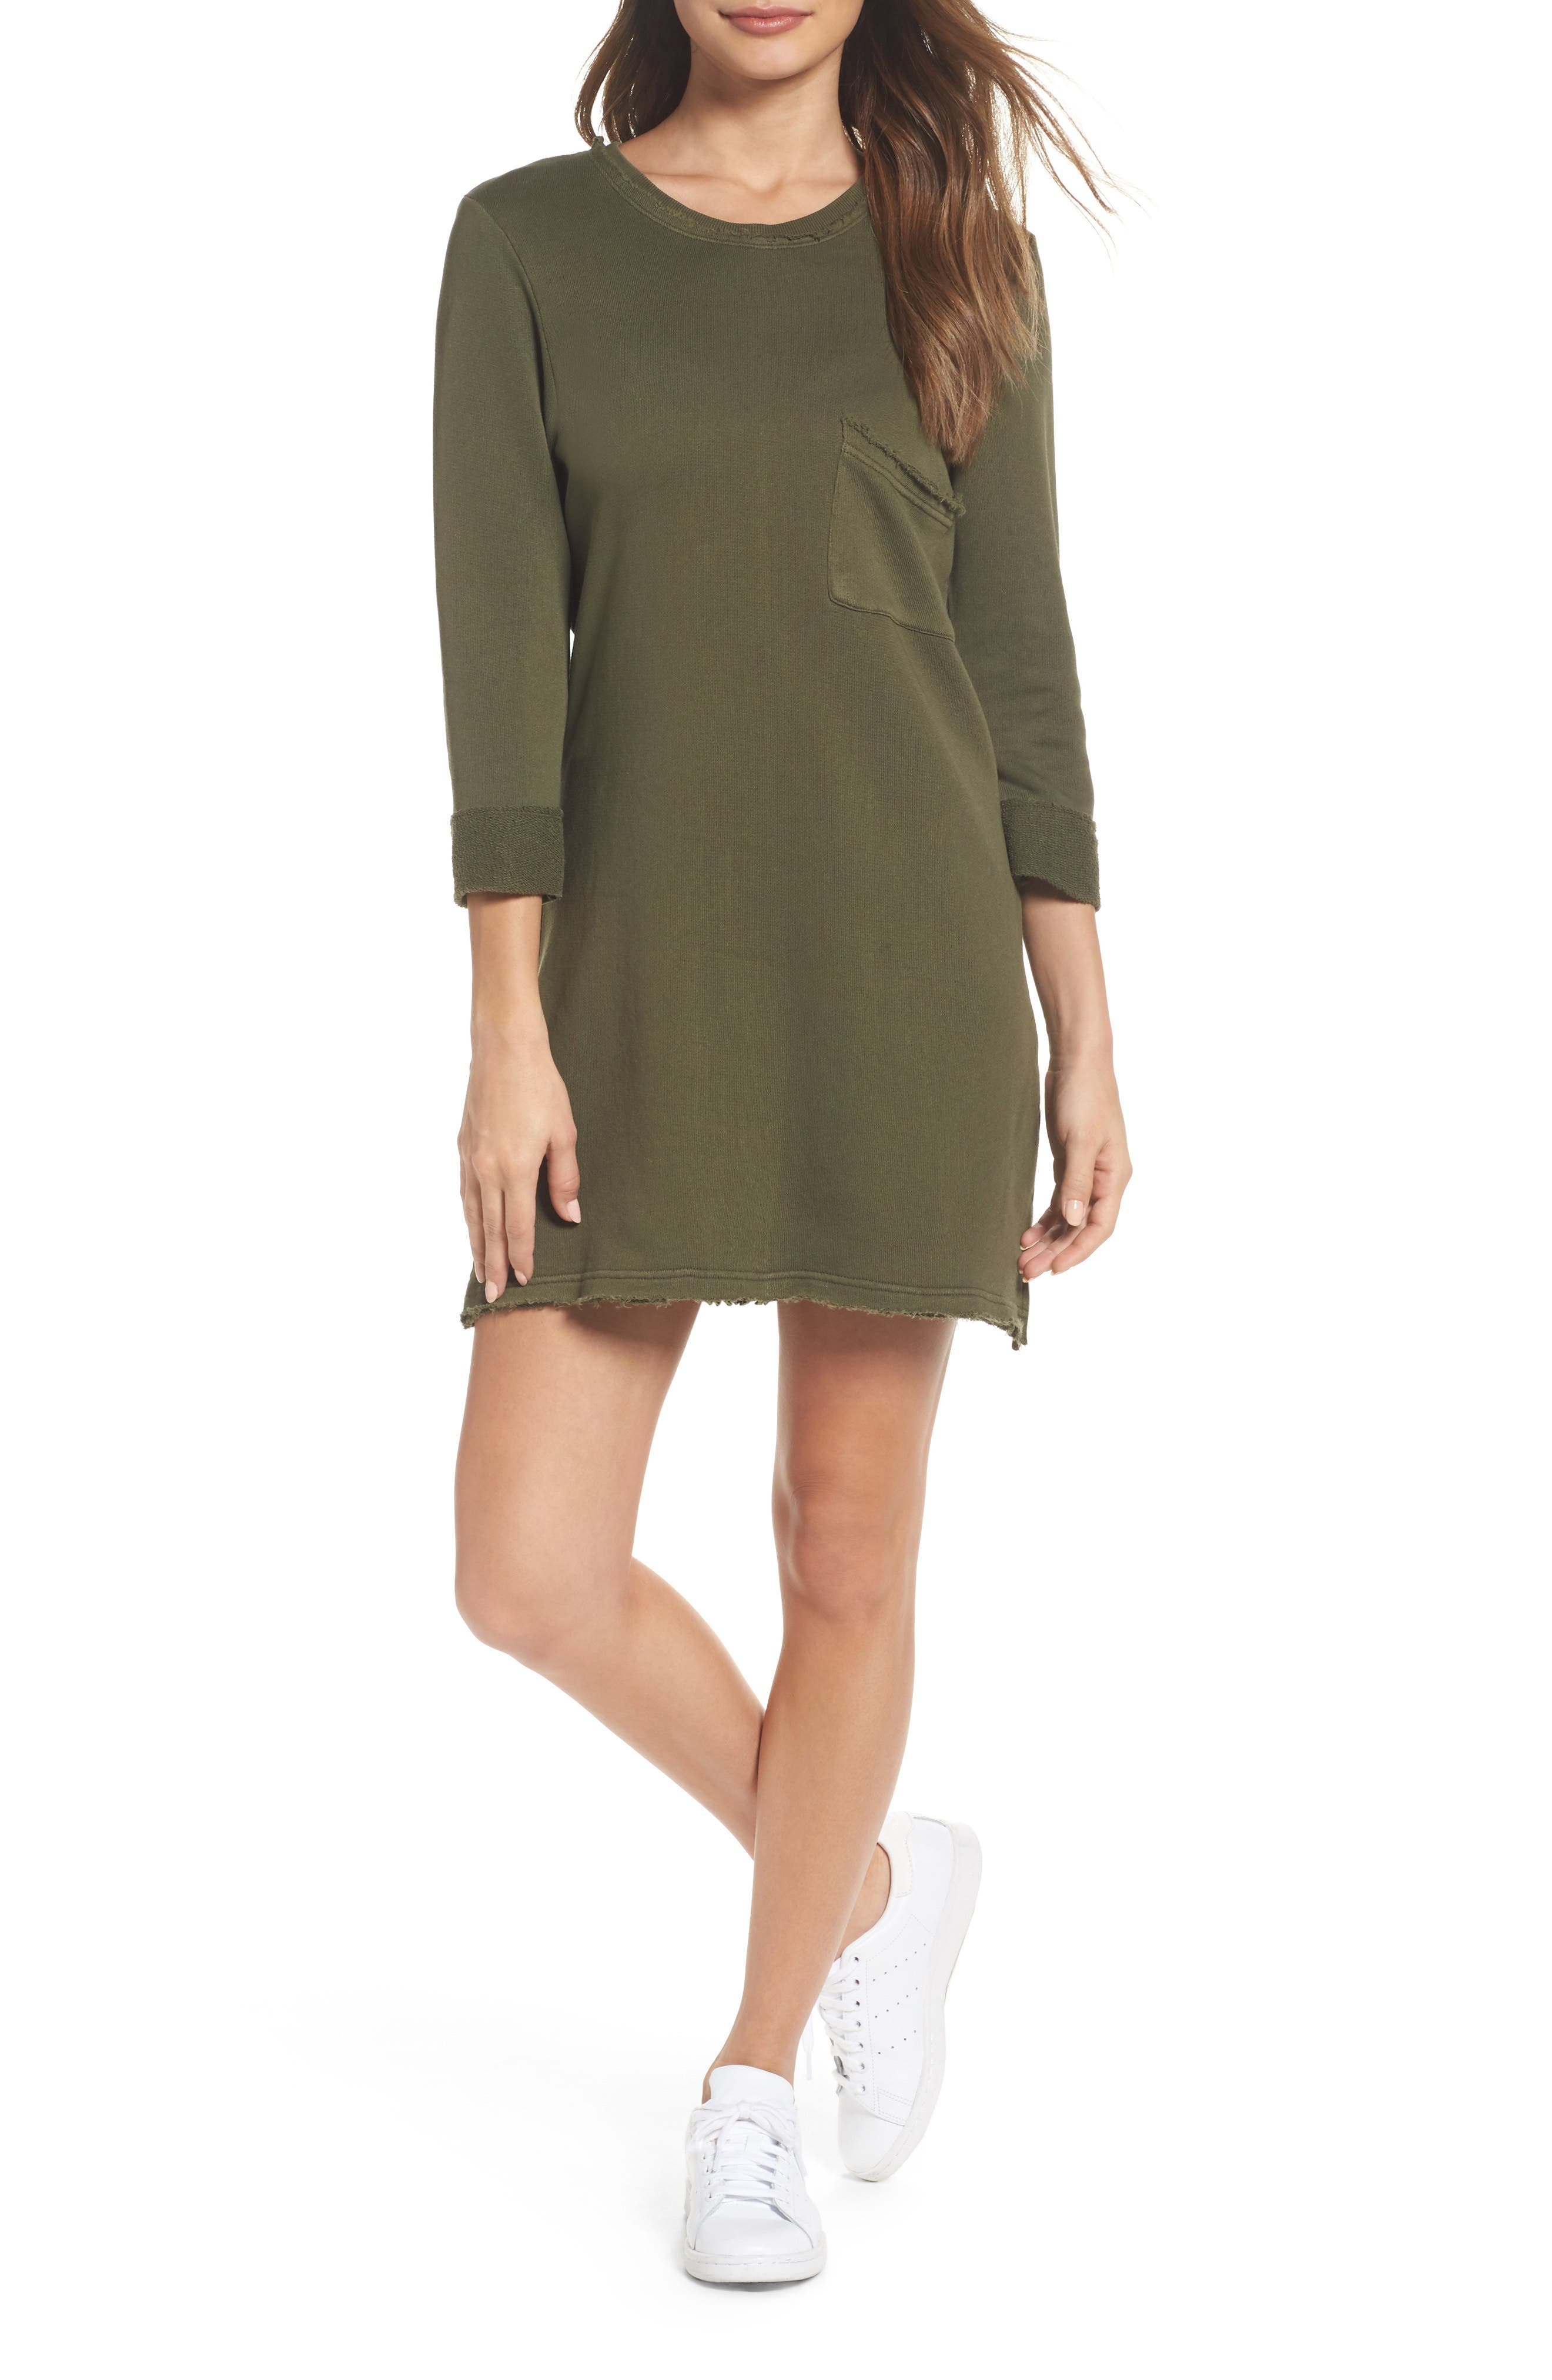 Chicago T-Shirt Dress,                         Main,                         color, Military Green